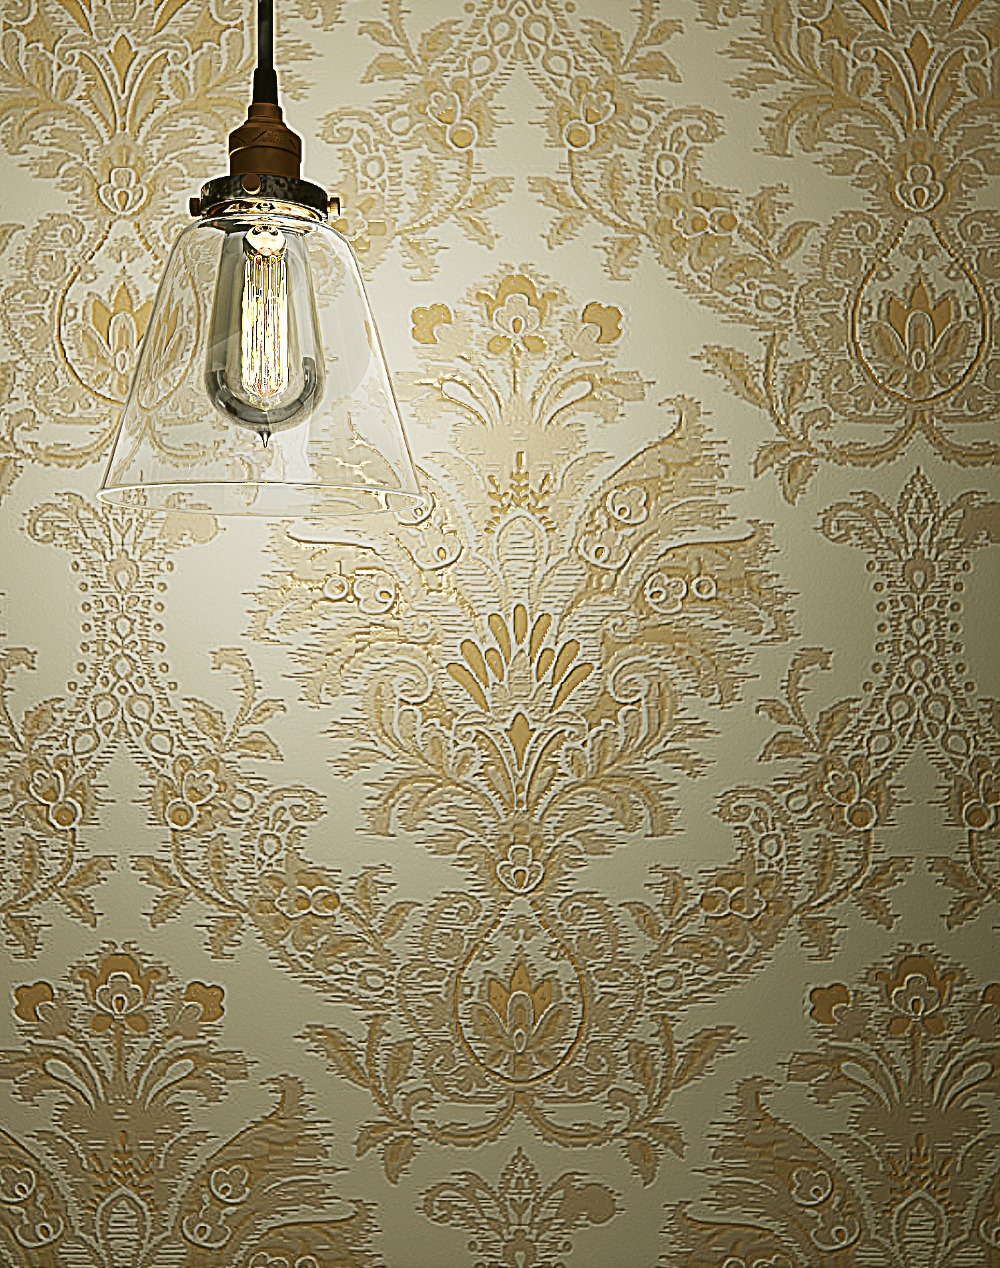 European style Beige Velvet Flocking Damask Wallpaper купить недорого в Москве